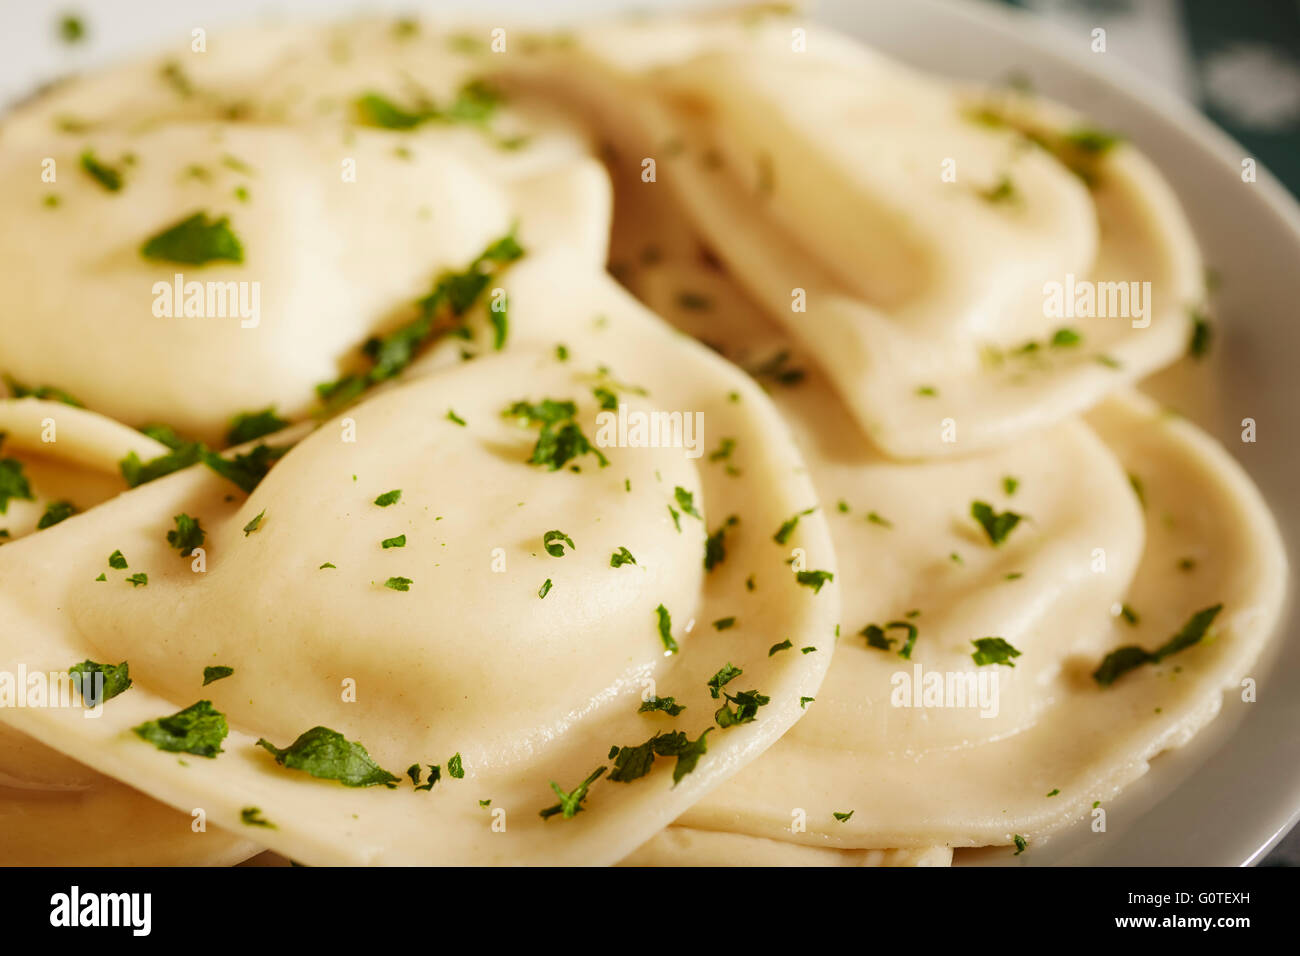 A plate of pierogies, the Polish filled pasta dumplings - Stock Image